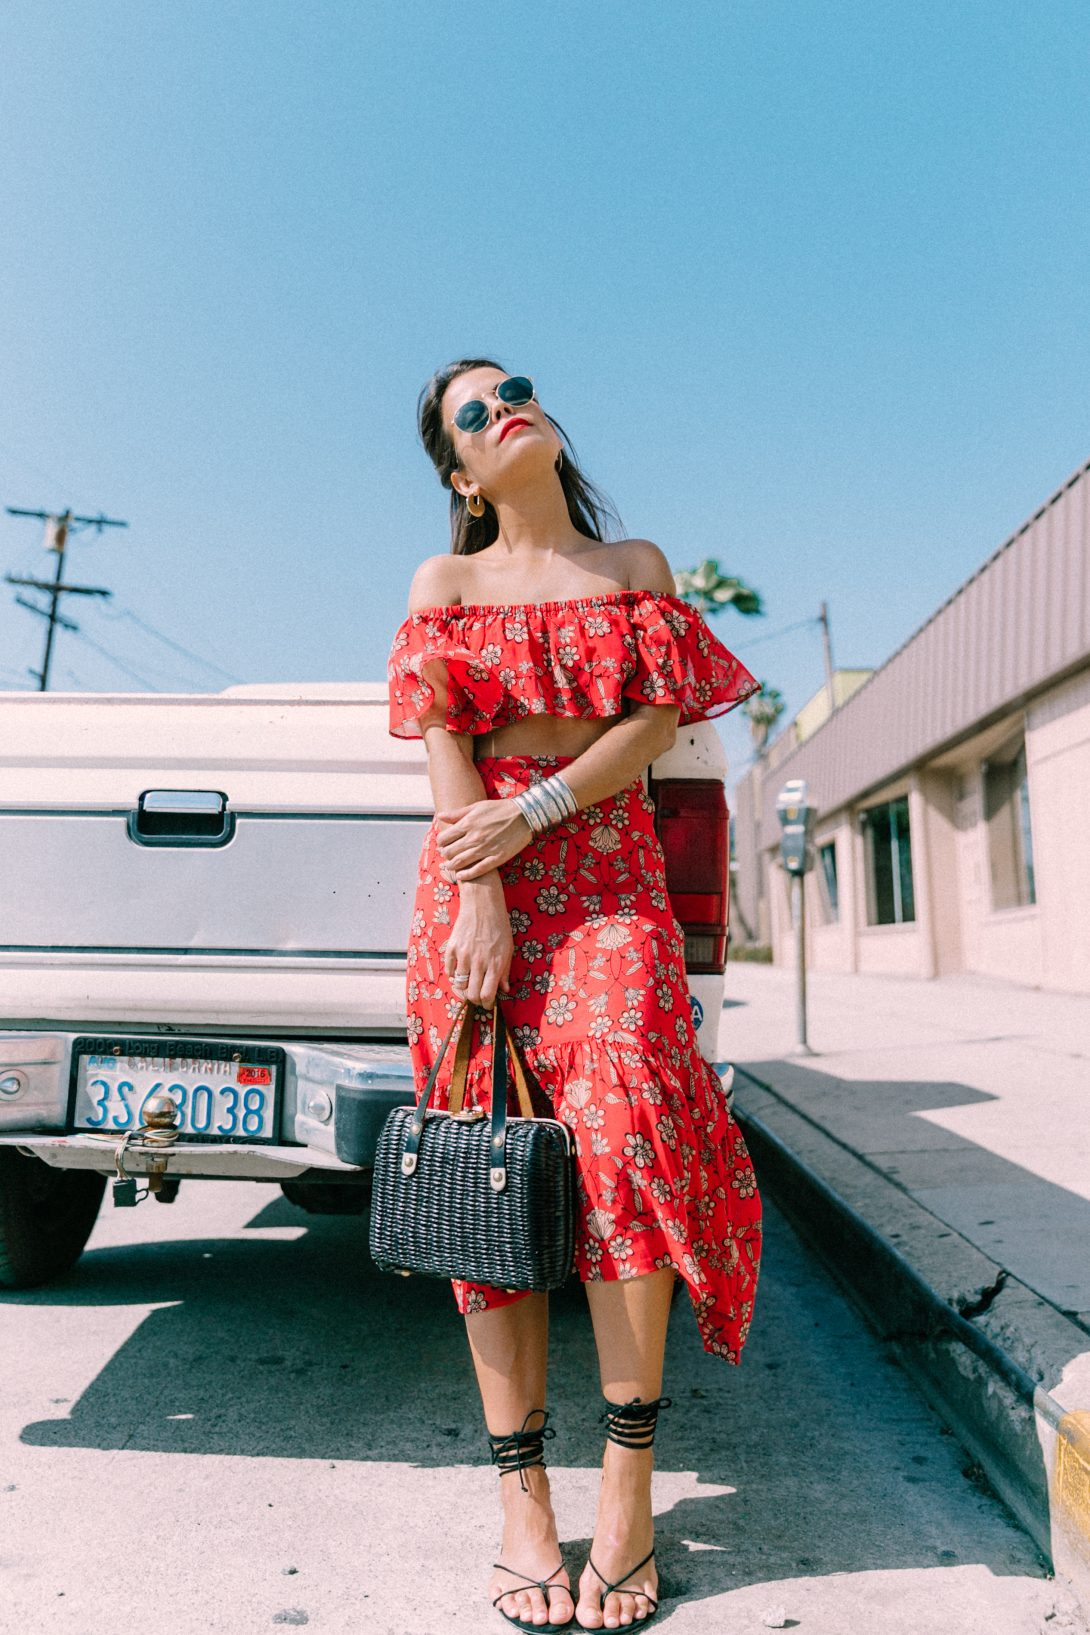 For_Love_And_Lemons-Raffia_Basket-Vintage-Cropped_Top-Midi_Skirt-Lace_Up_Sandals-Revolve_Clothing-Outfit-Collage_Vintage--29